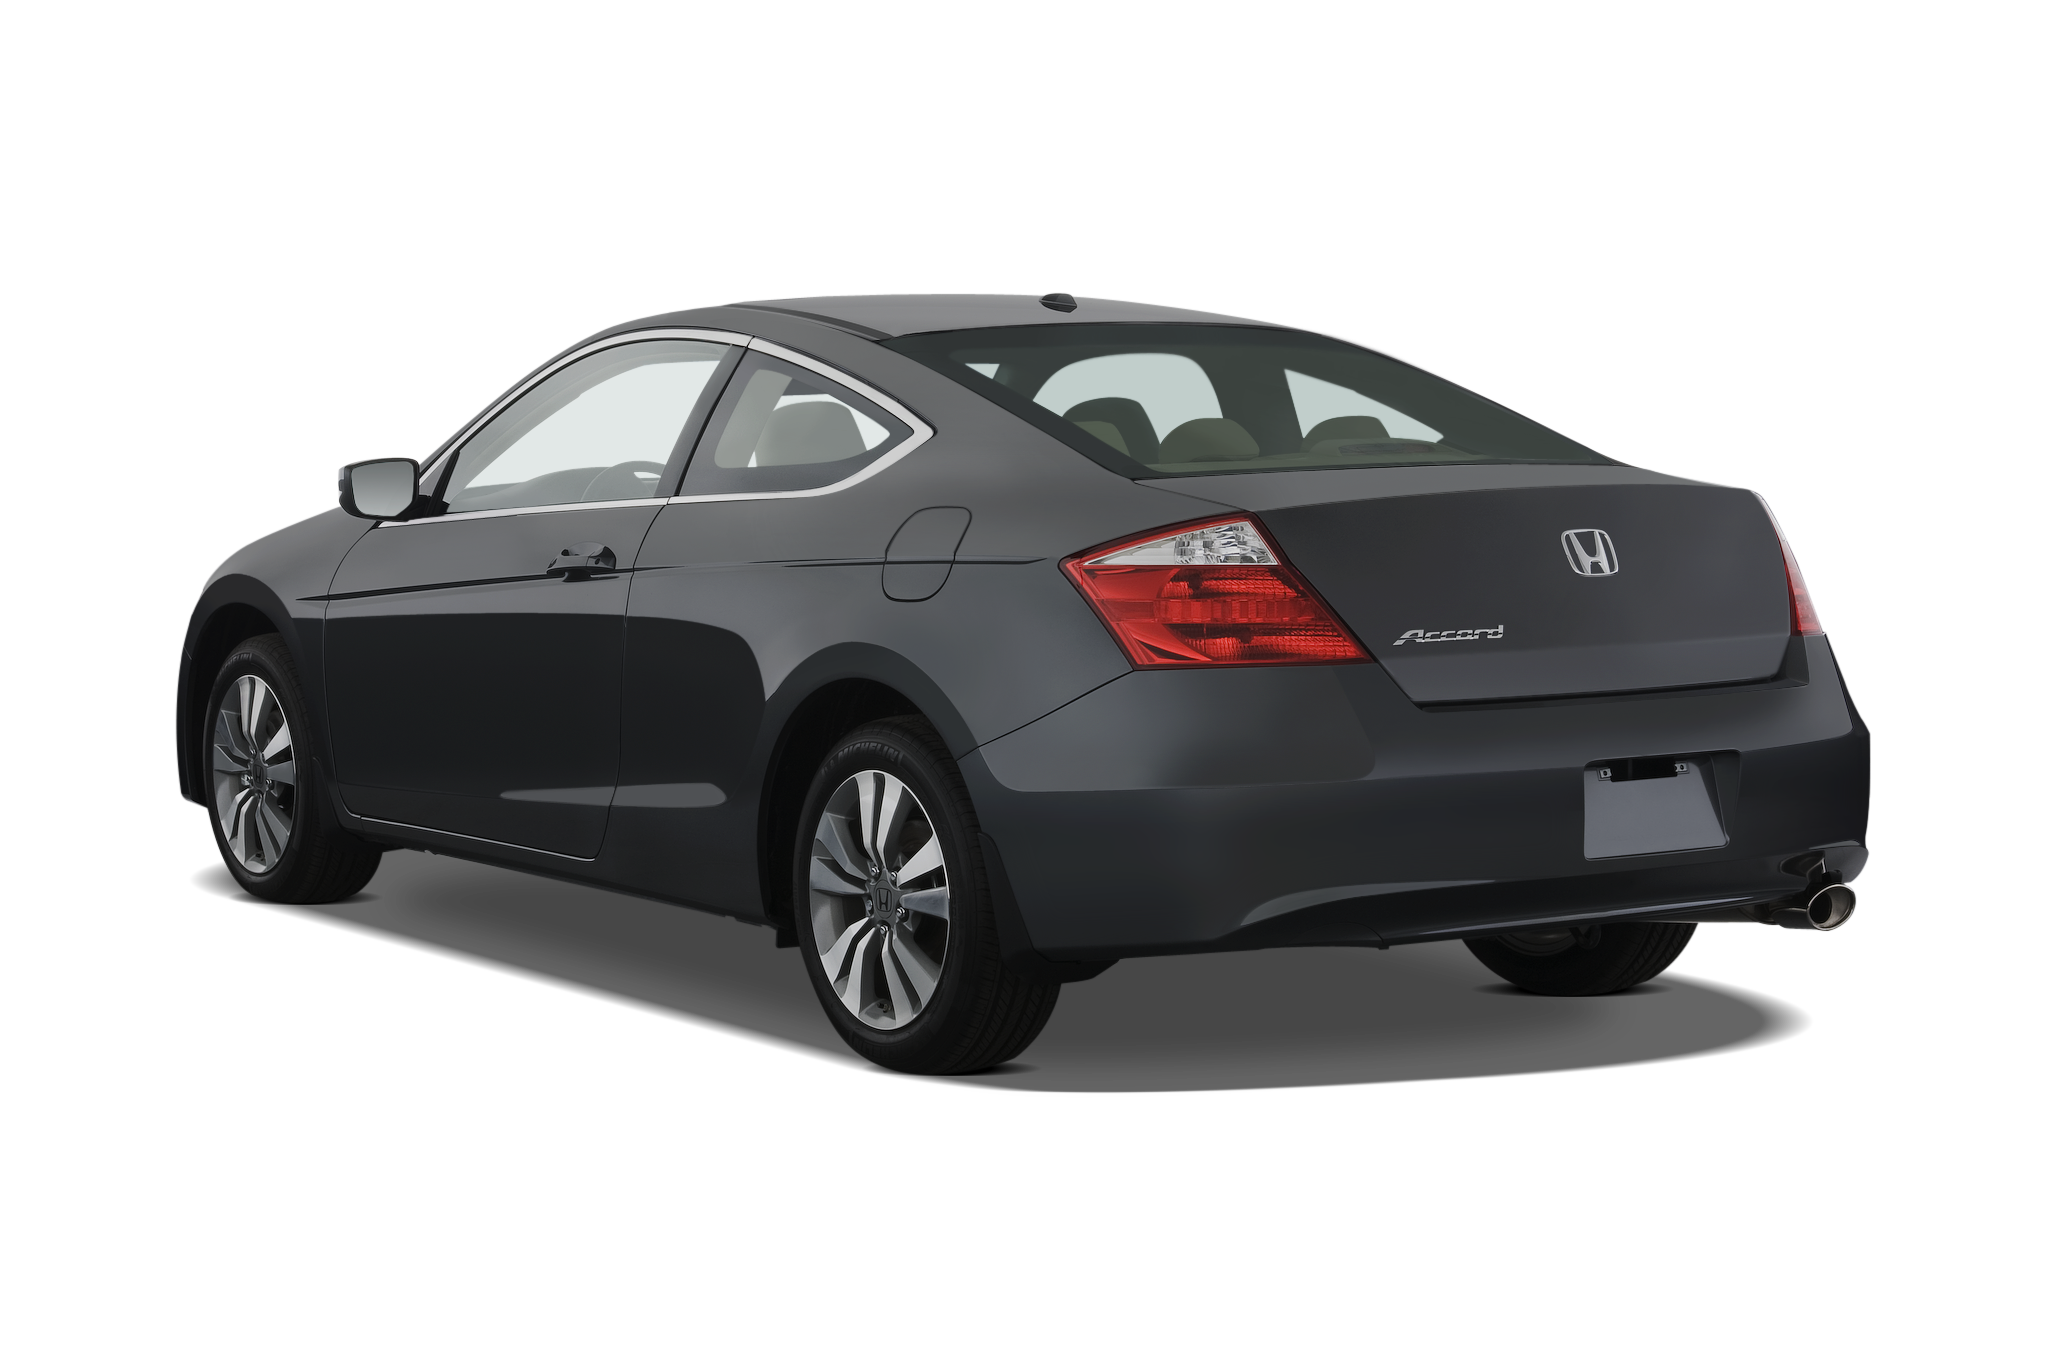 comes accord our metallic this colour coupe vehicle loaded steel of ex one modern has featuring navi honda dow l currently demos and was km it again with executive featured the used